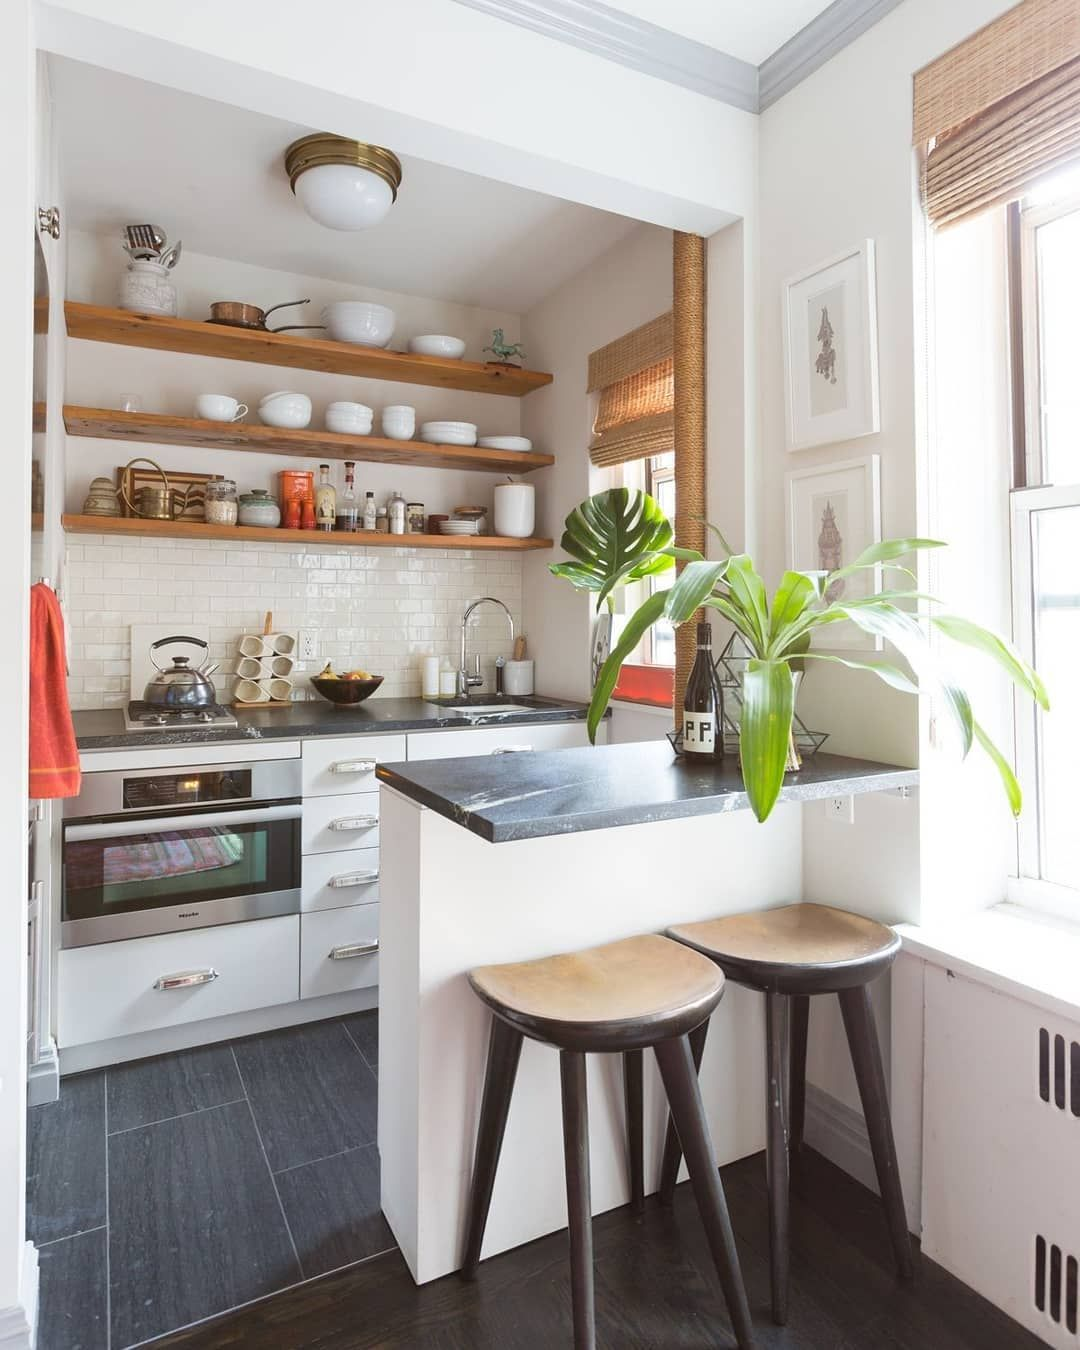 Minimalist Style for Small Kitchen